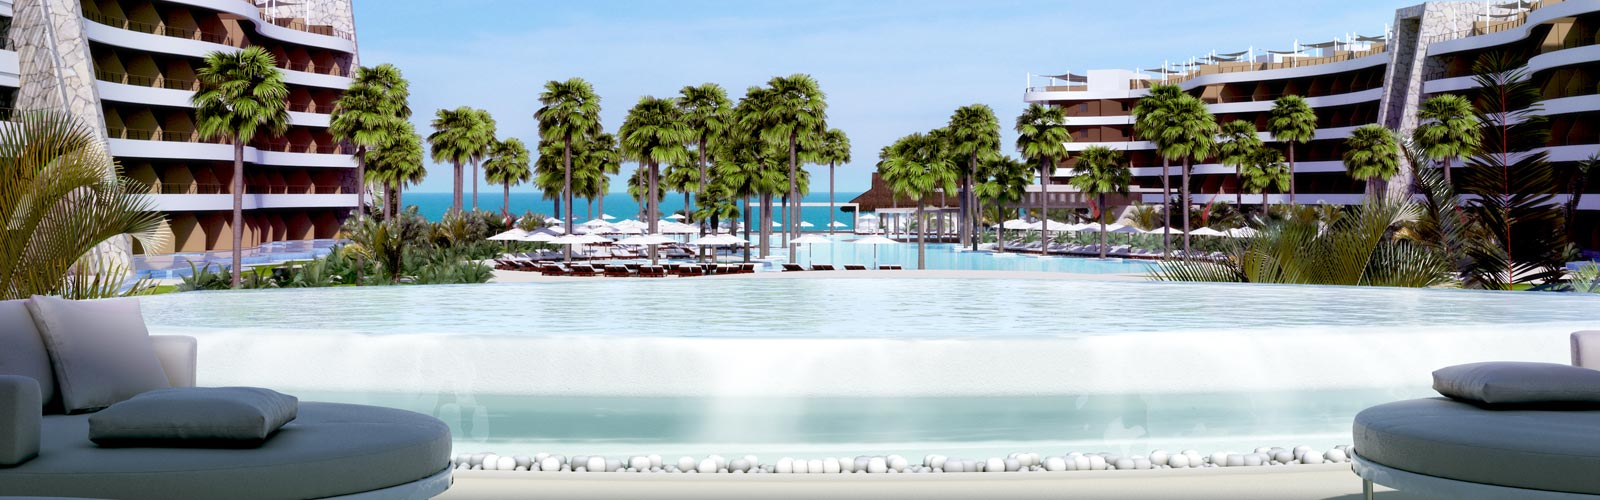 artist rendering of pool view from hotel